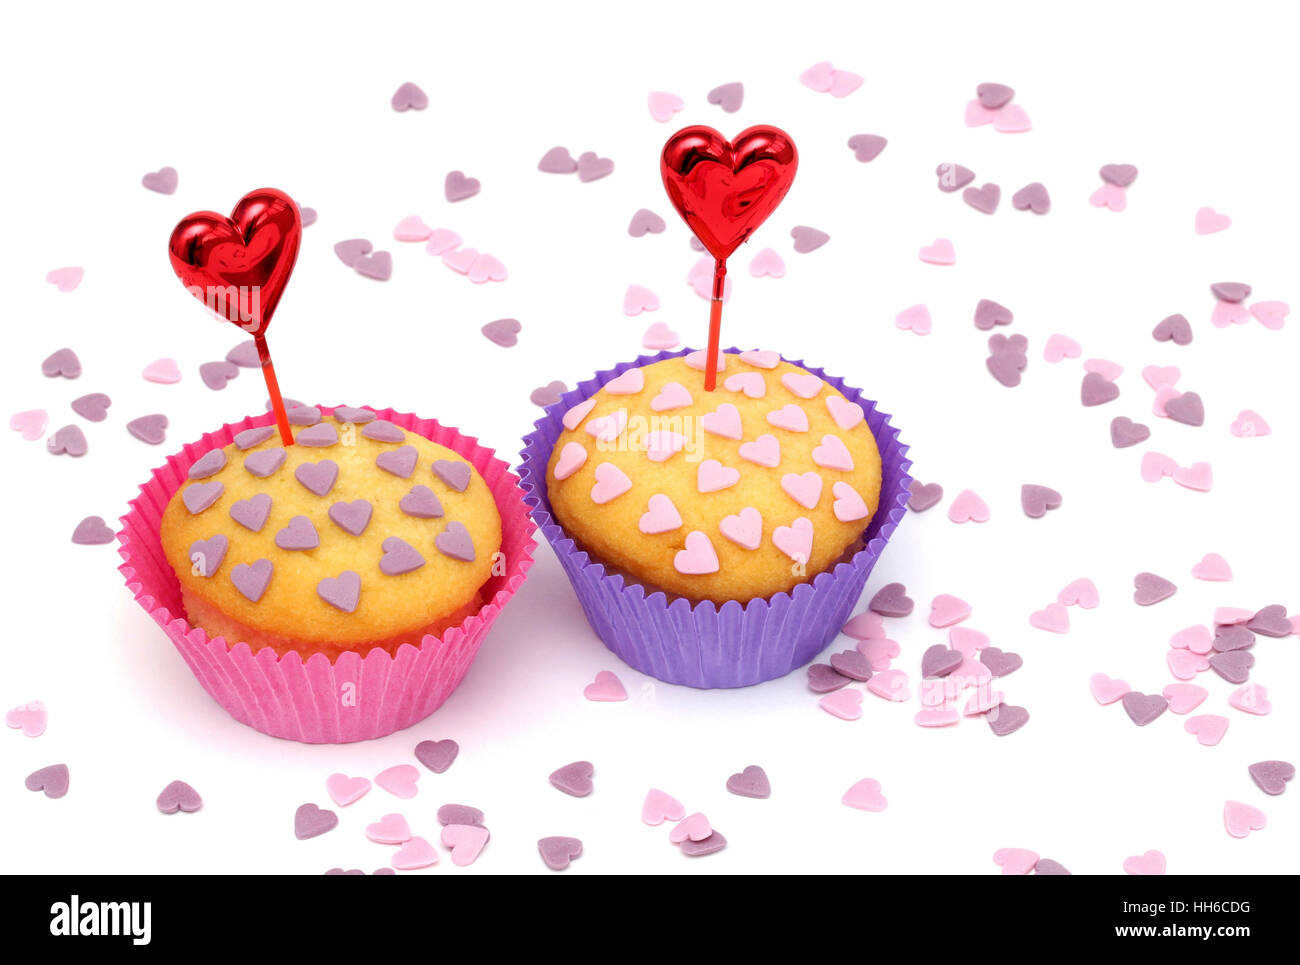 Two cupcakes with little pink and purple hearts - Stock Image